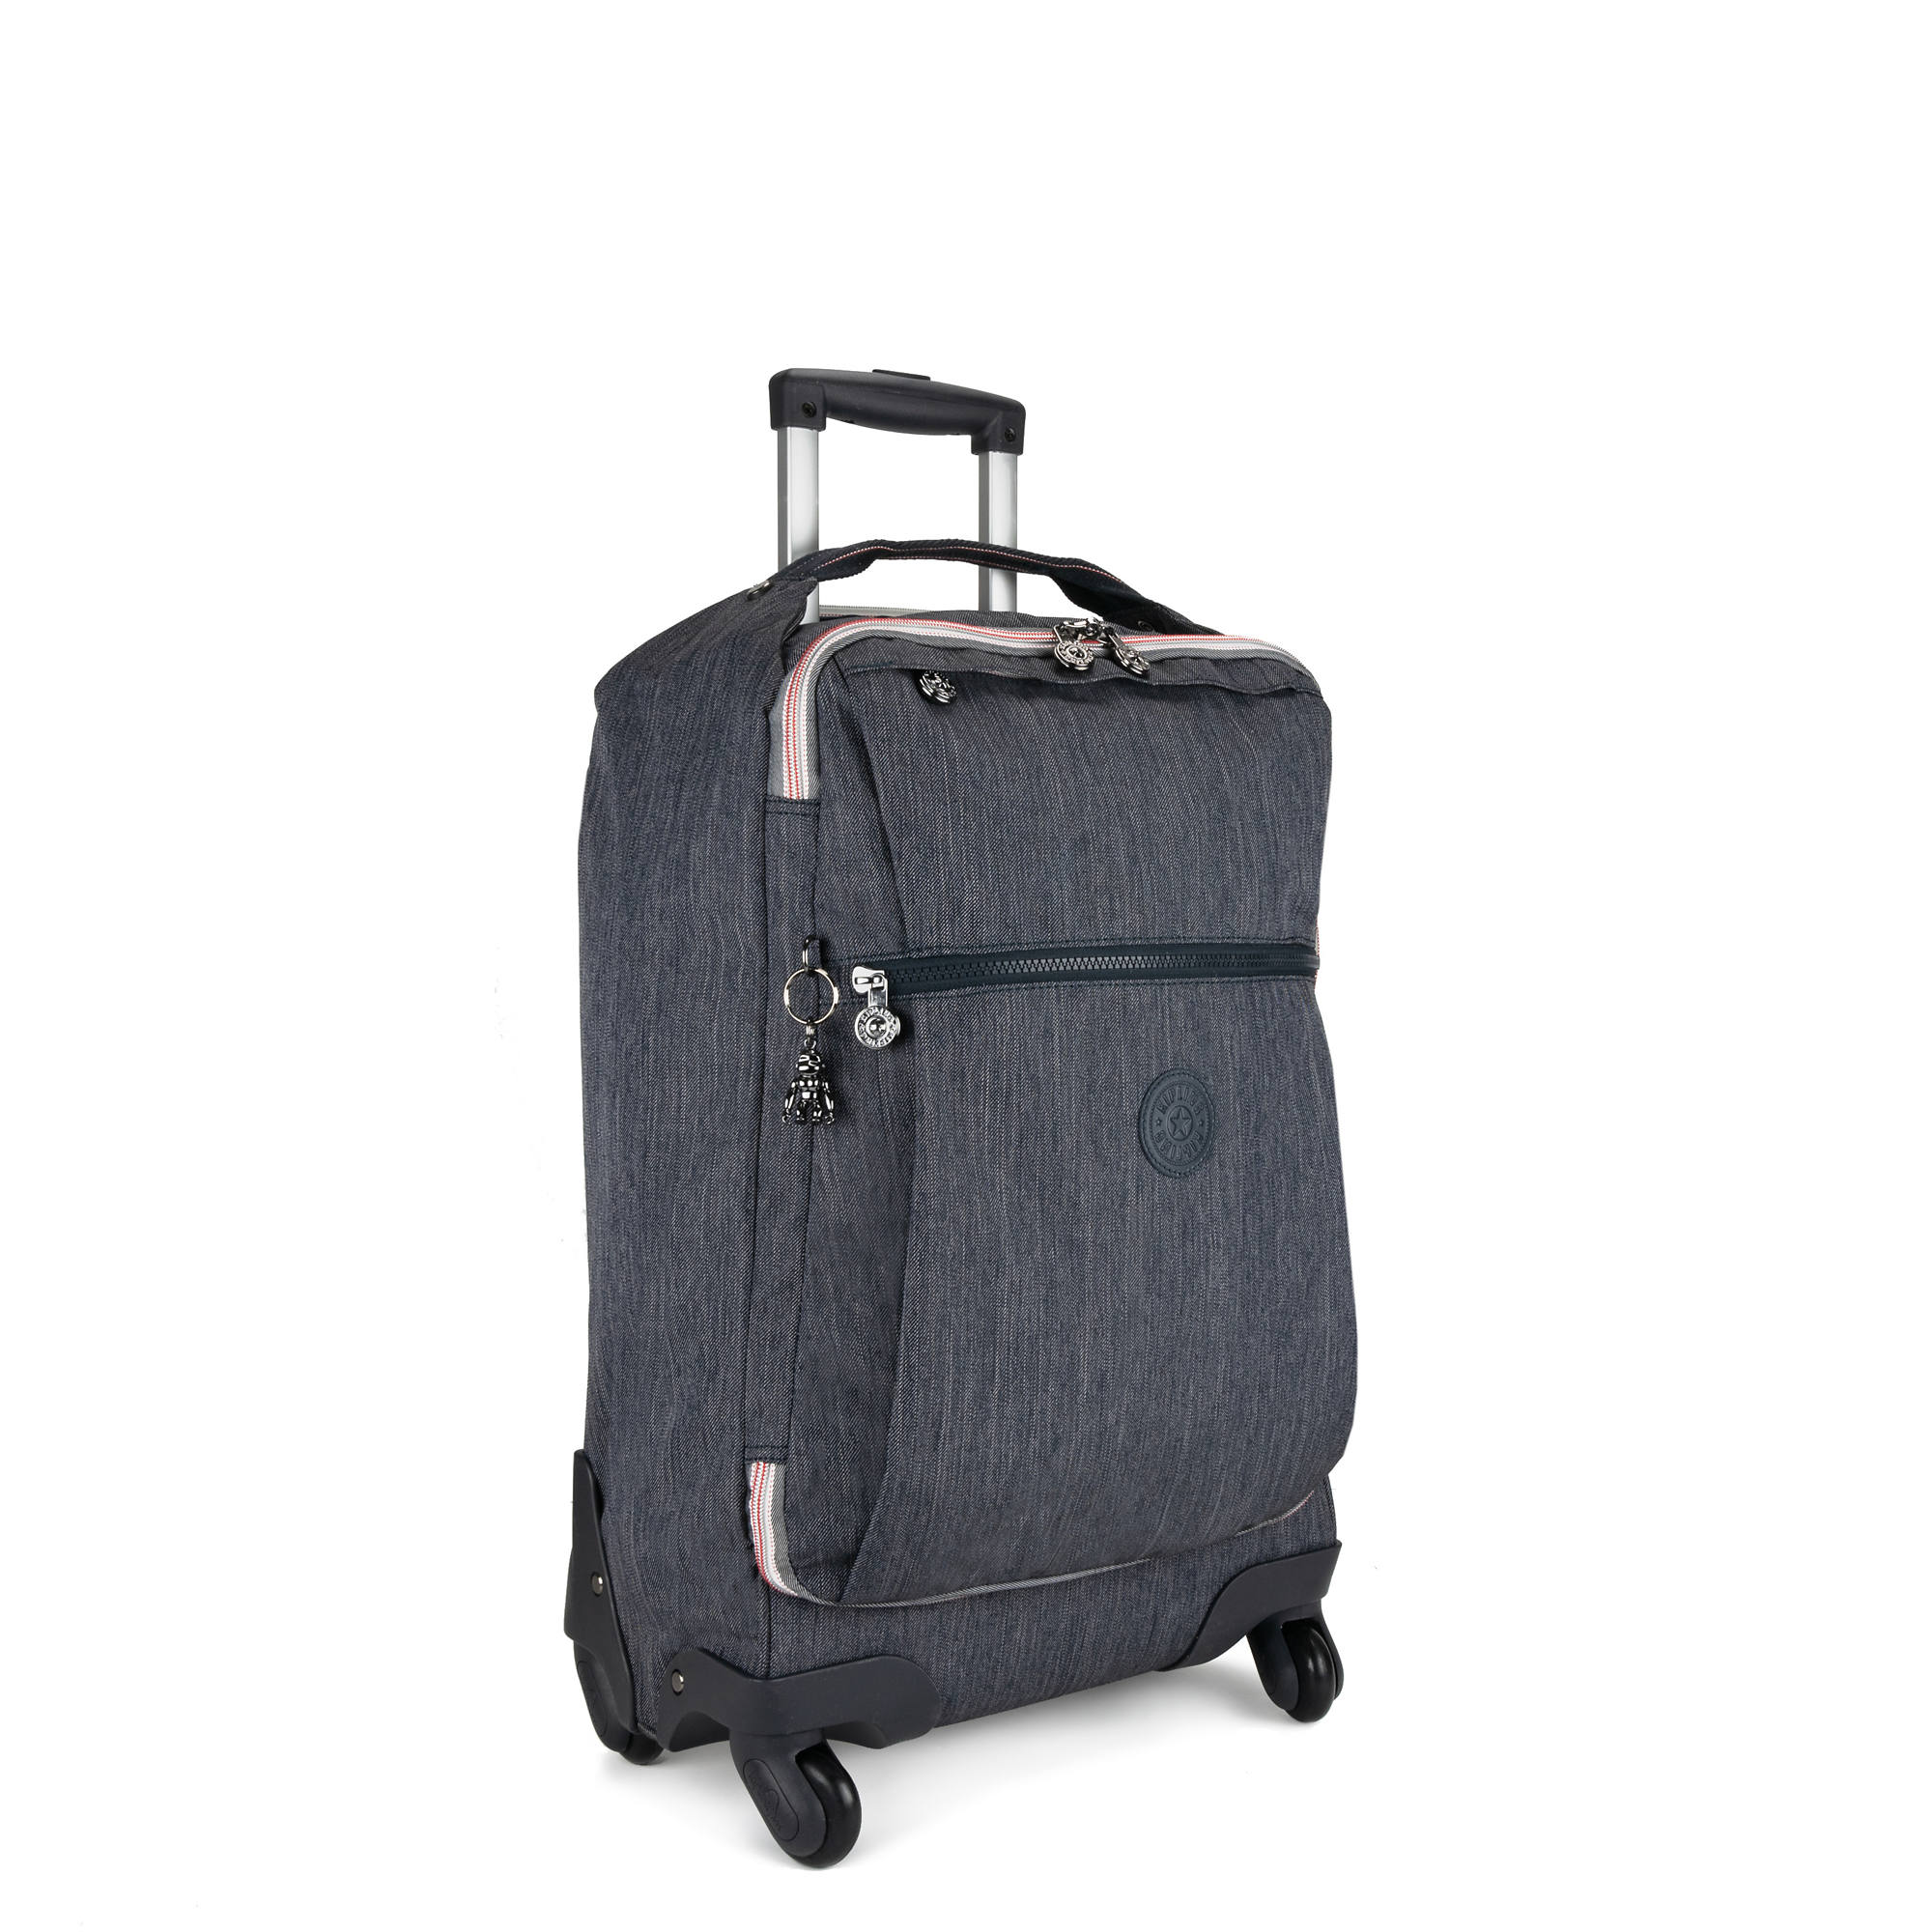 6f8e4e0fee Darcey Small Carry-on Rolling Luggage